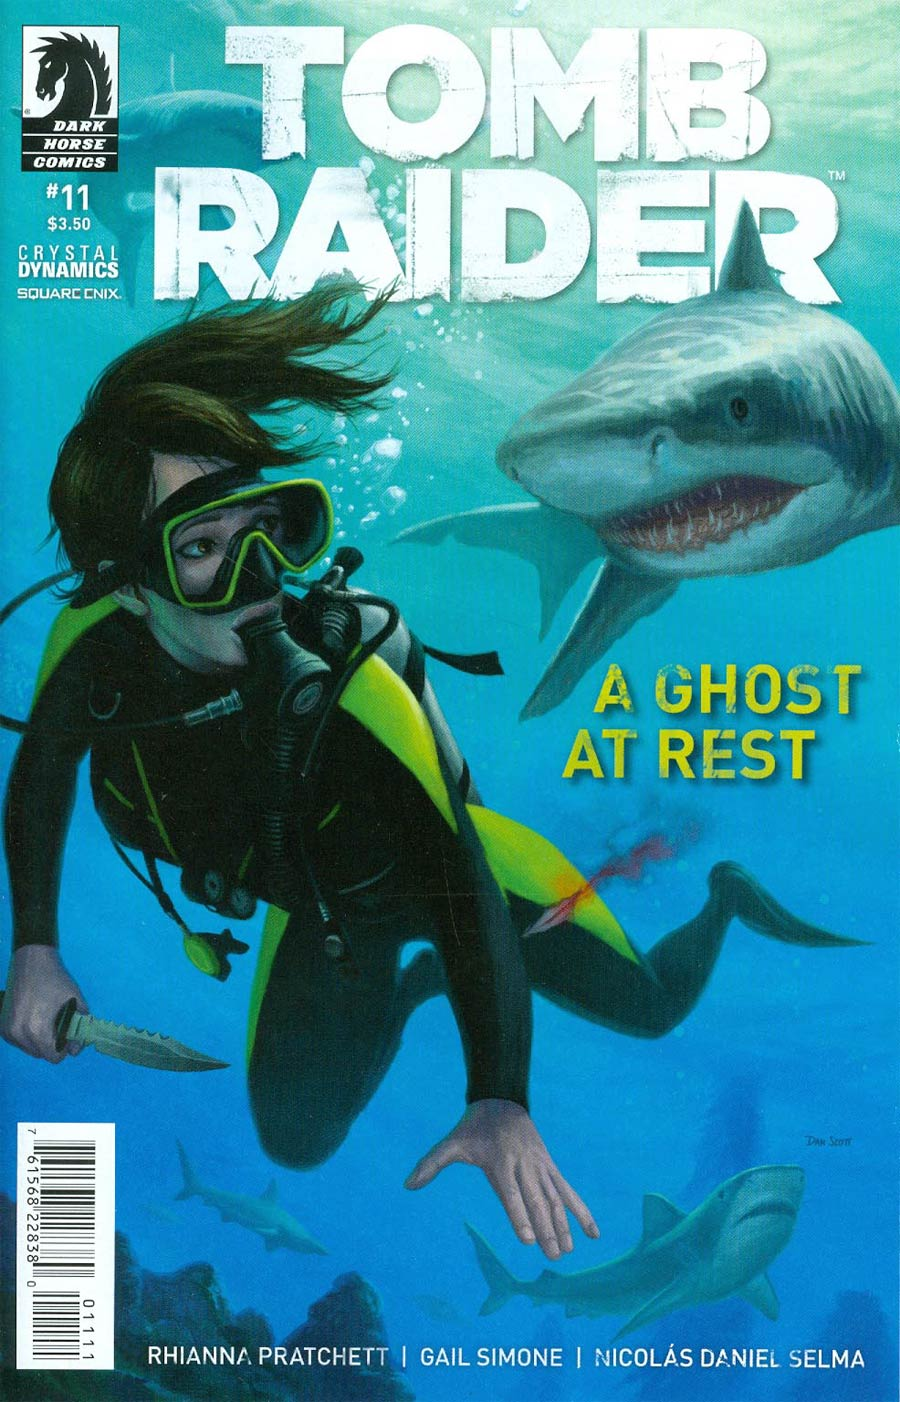 Tomb Raider Vol 2 #11